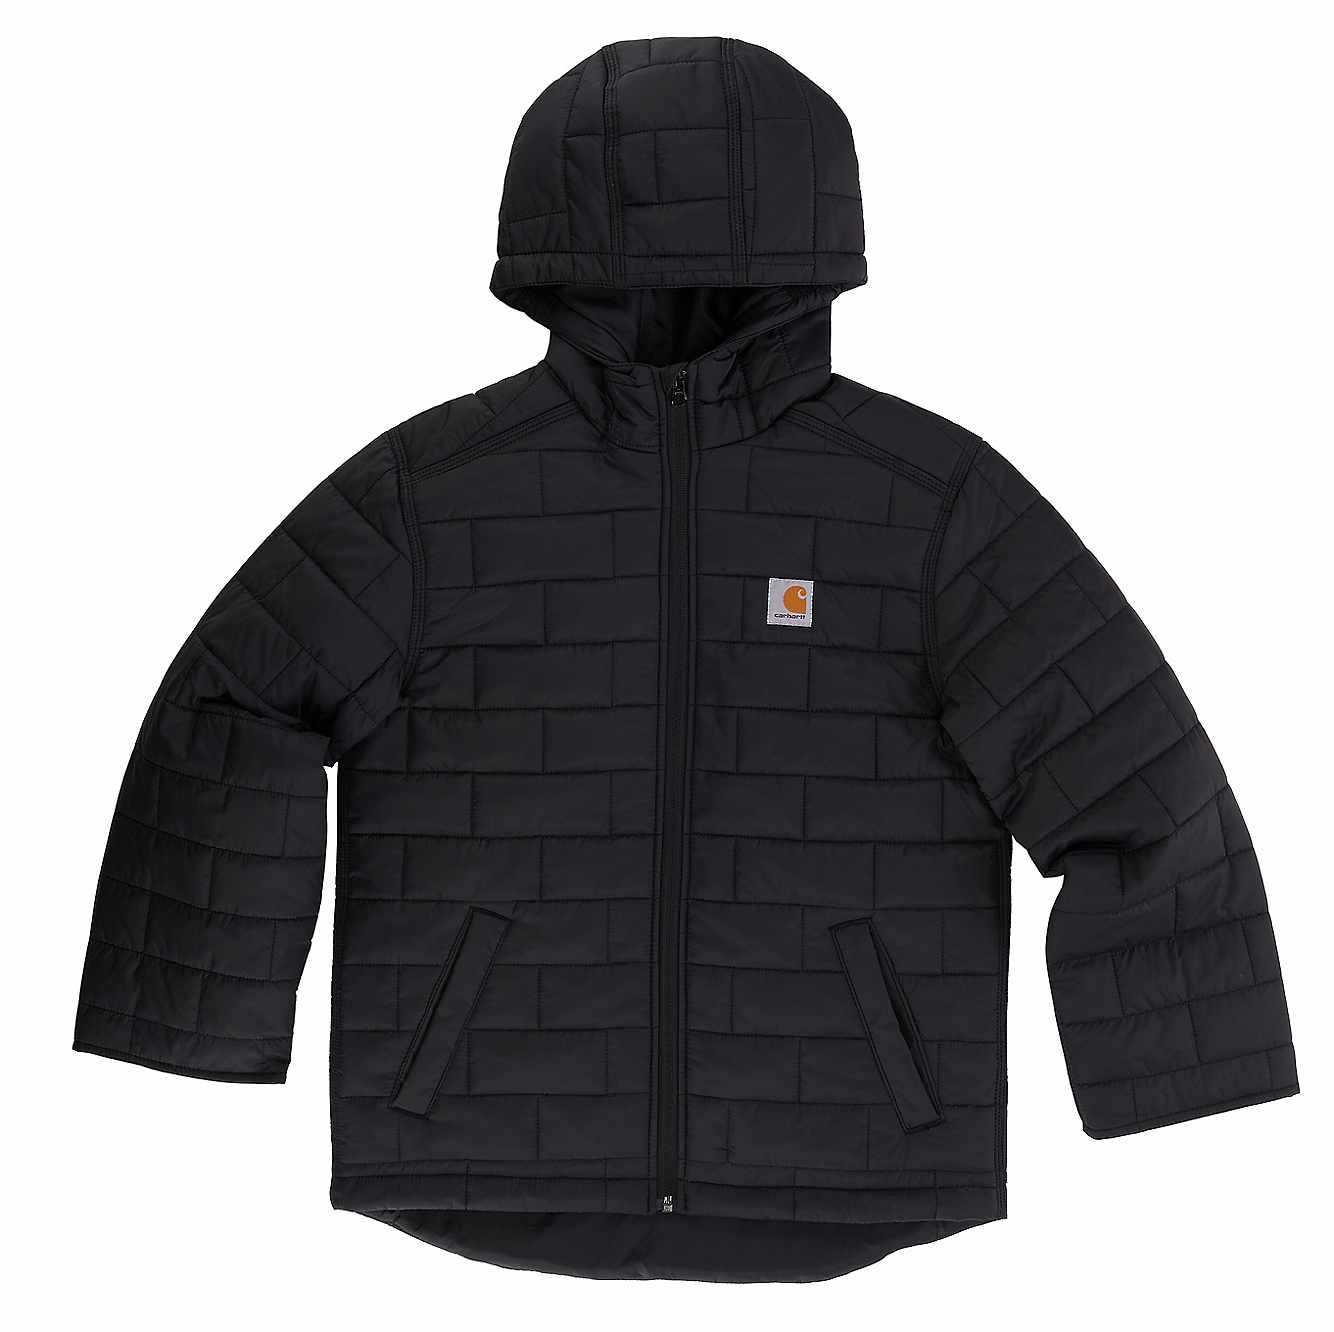 Picture of Gilliam Hooded Jacket in Car Black